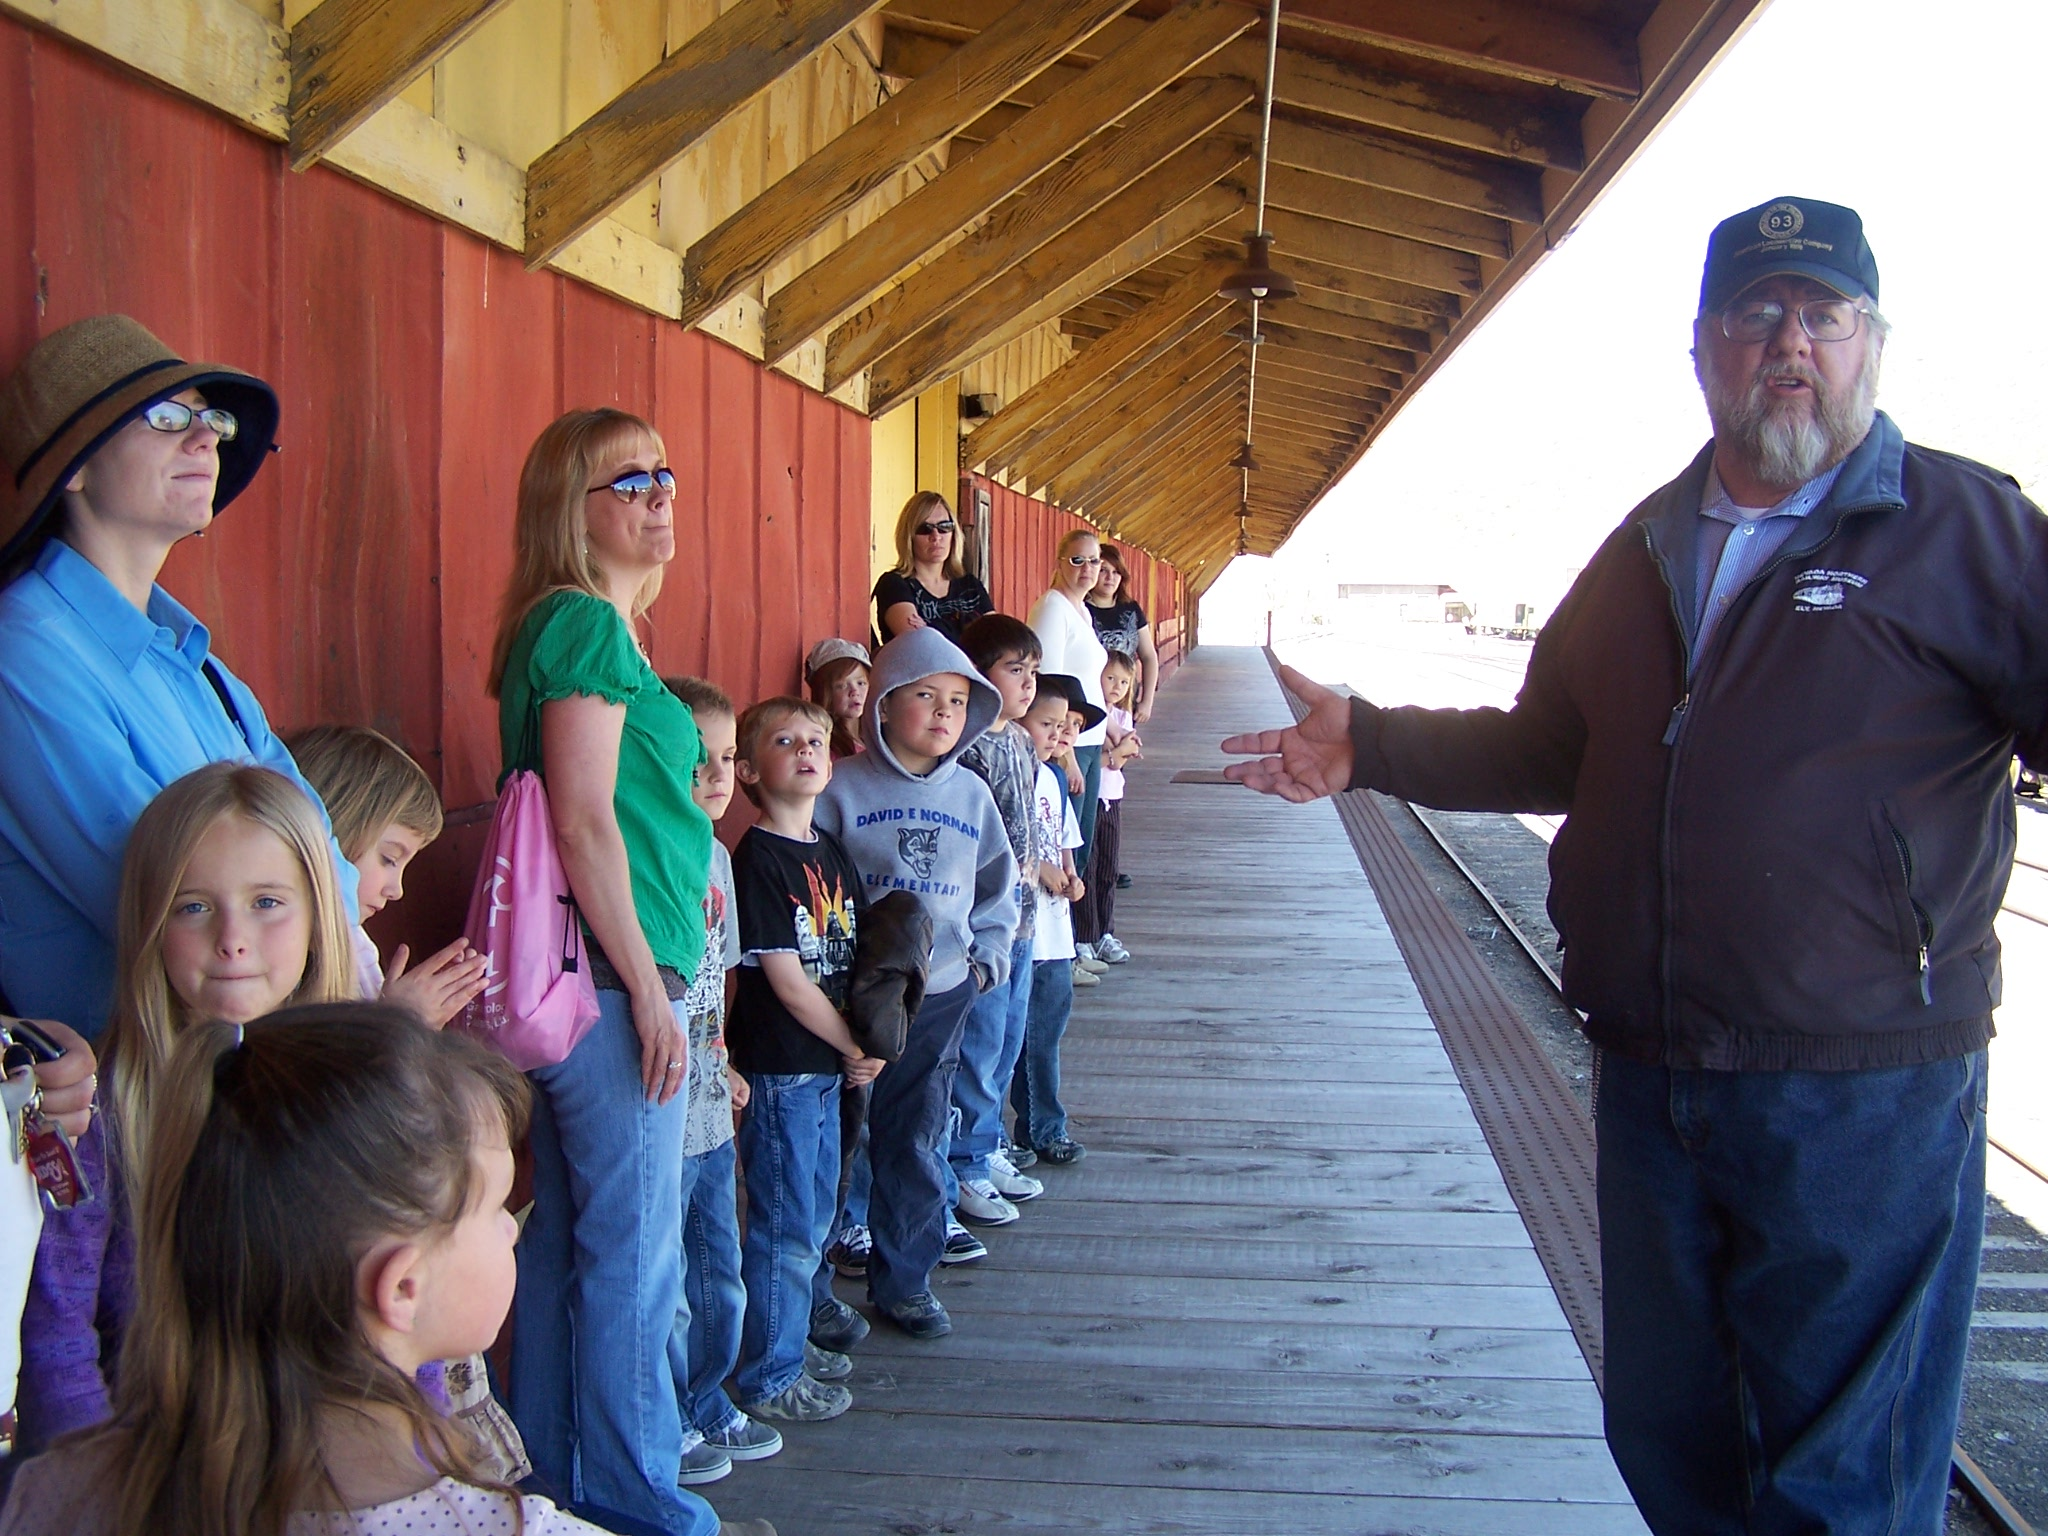 School group learning about what takes place in a rail yard